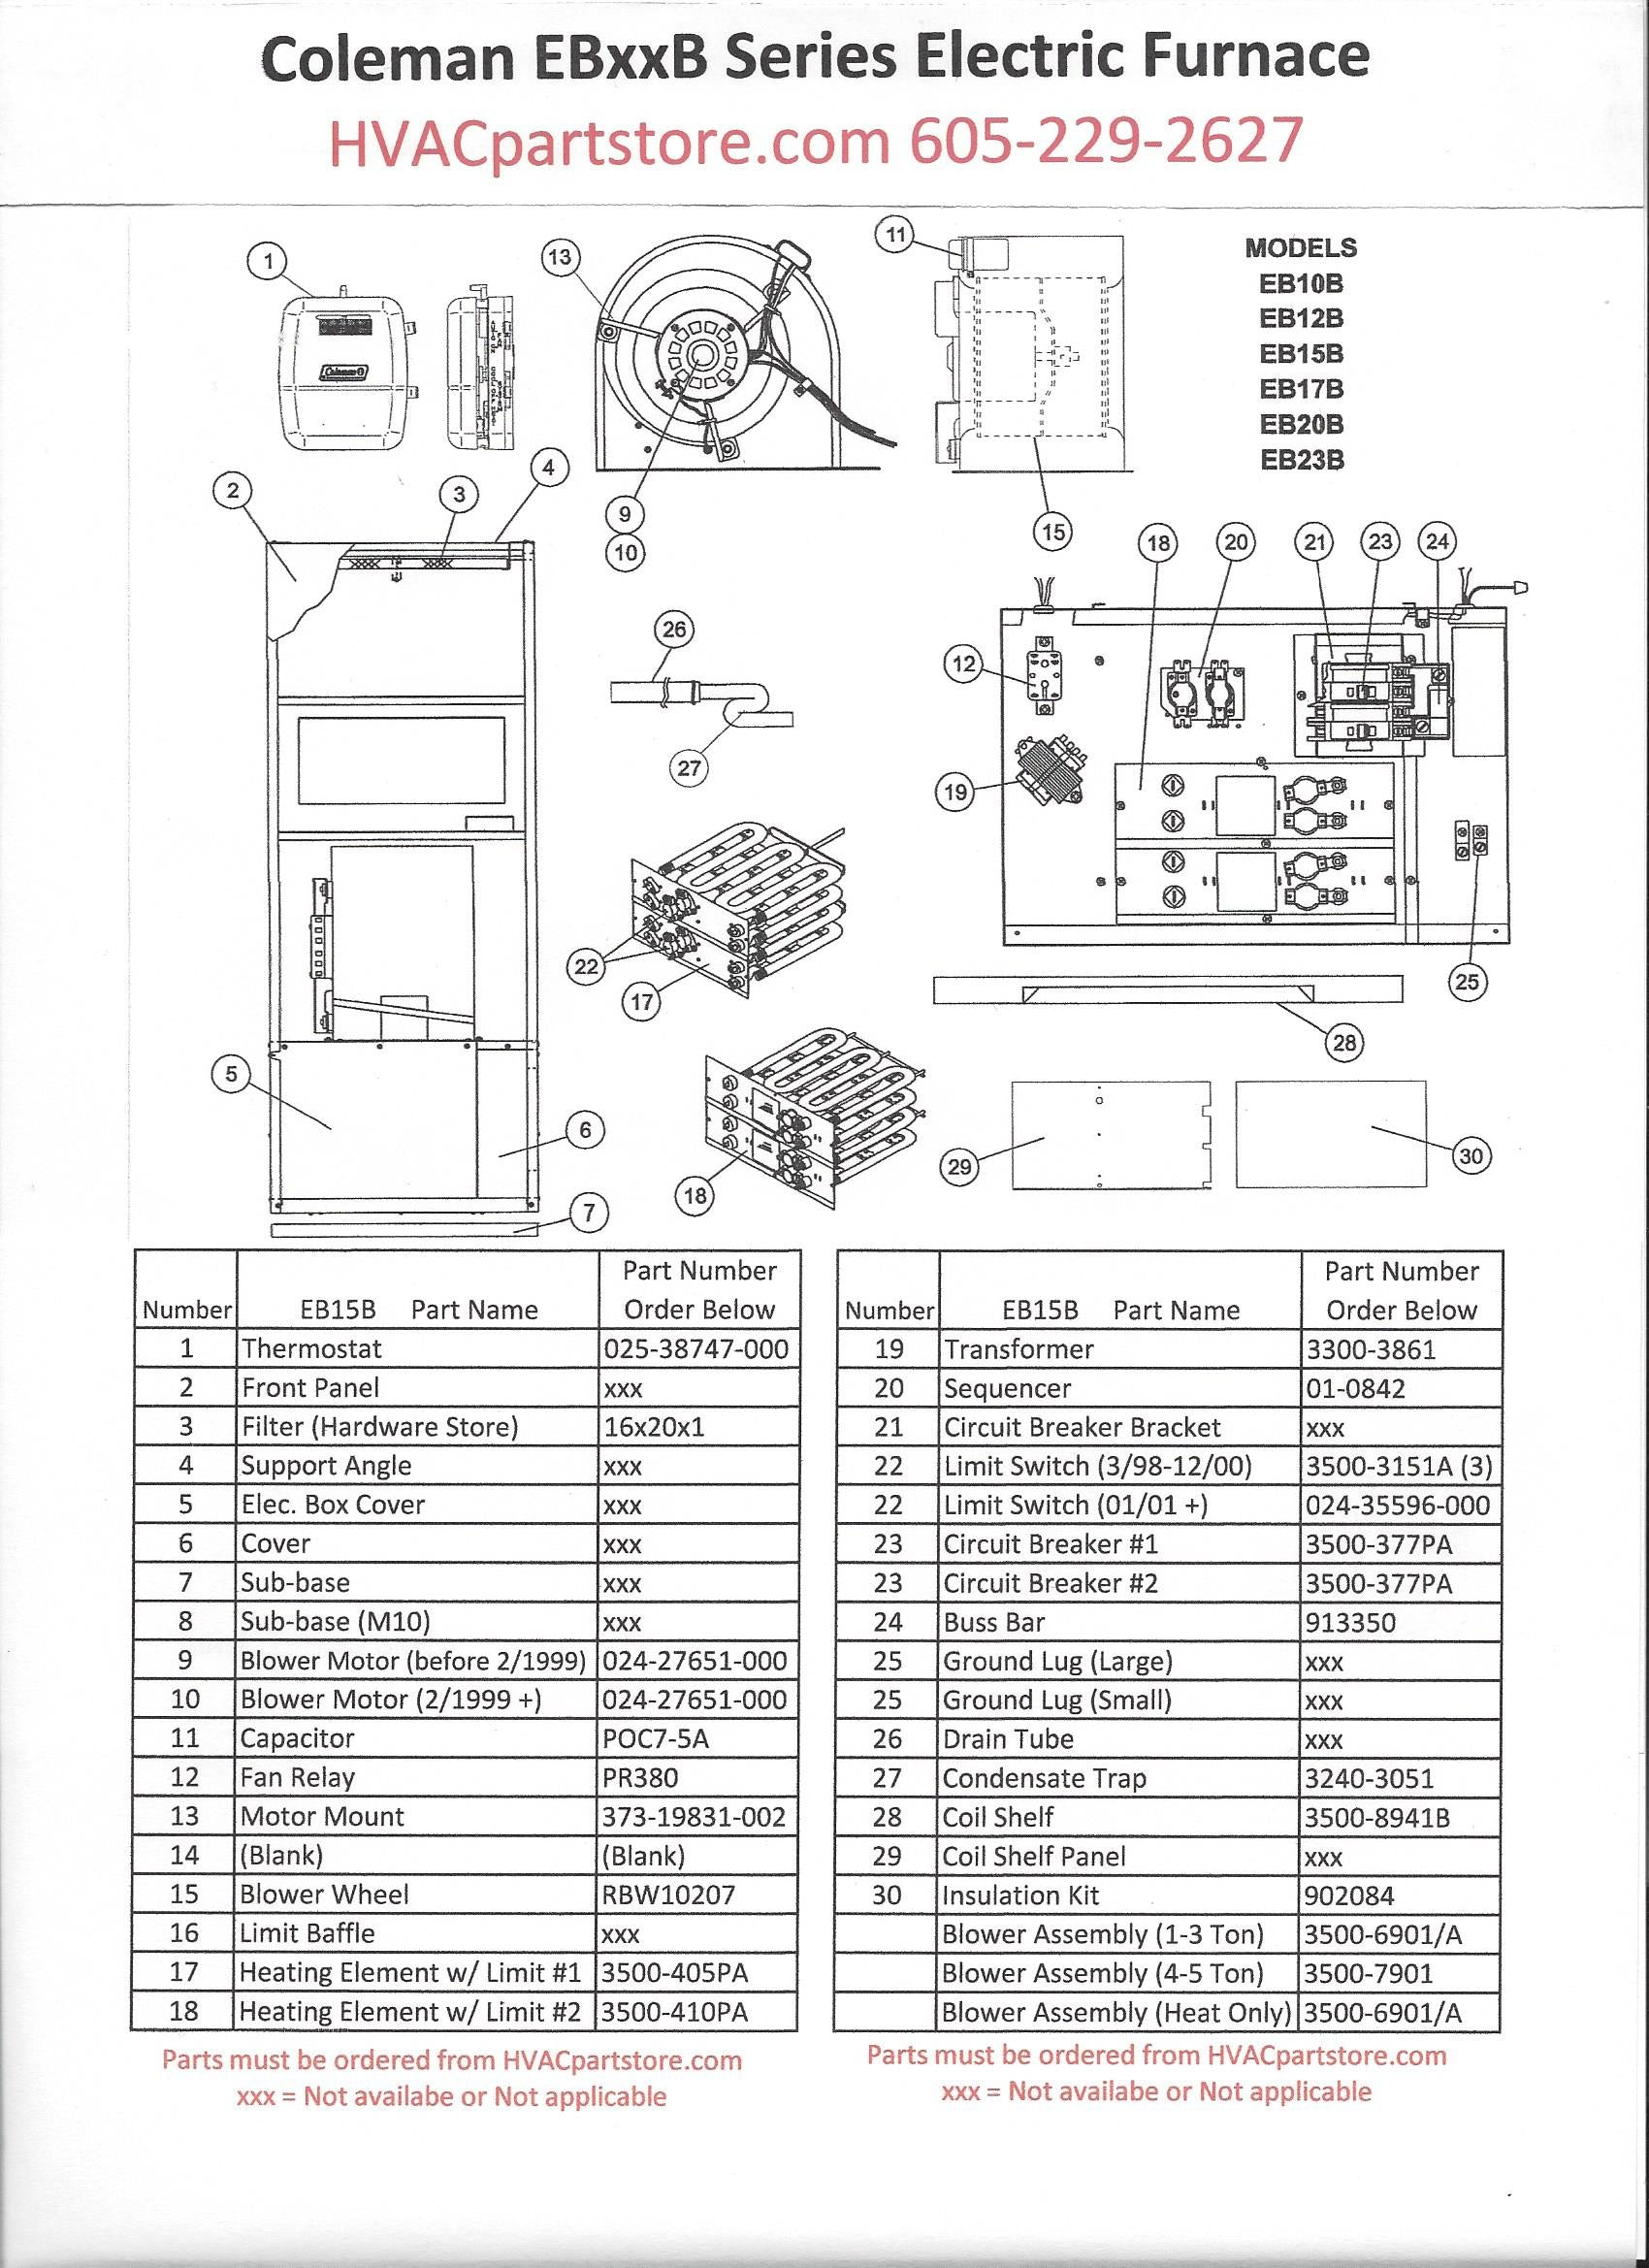 EB15Bparts?403081896817250070 eb15b coleman electric furnace parts hvacpartstore  at gsmx.co